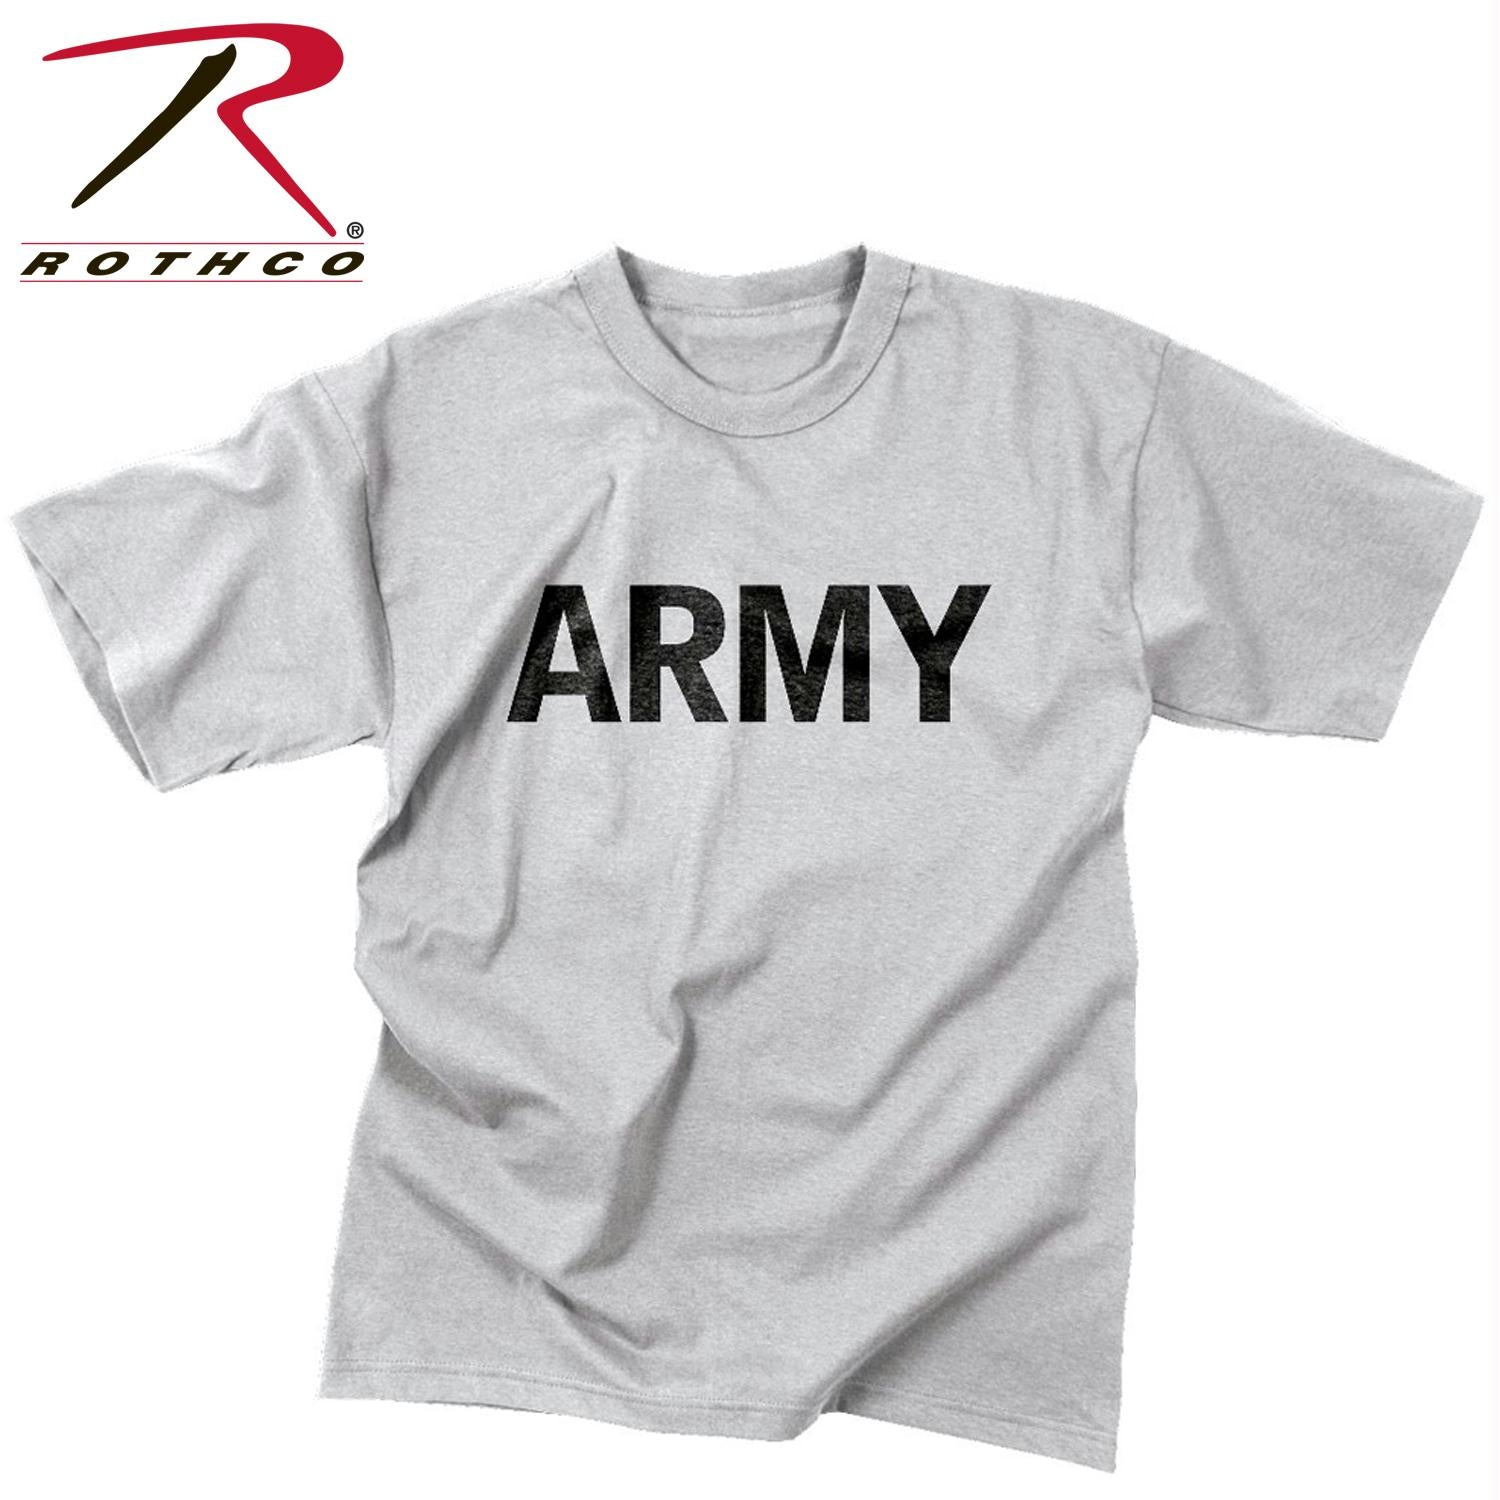 Rothco Army Moisture Wicking P/T T-Shirt - 3XL